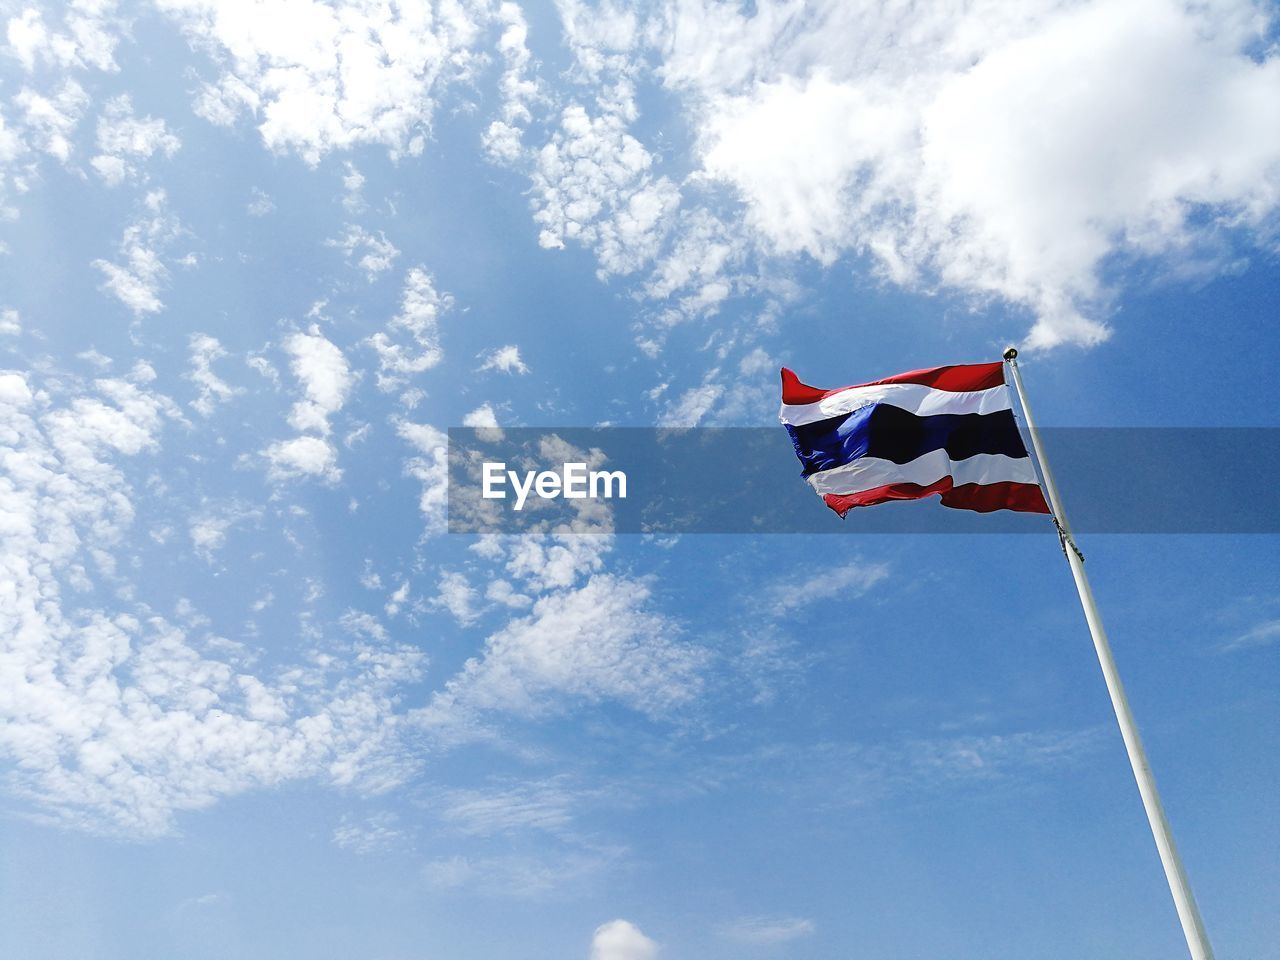 cloud - sky, flag, patriotism, sky, low angle view, wind, environment, nature, pole, day, no people, red, white color, waving, outdoors, blue, striped, motion, independence, national icon